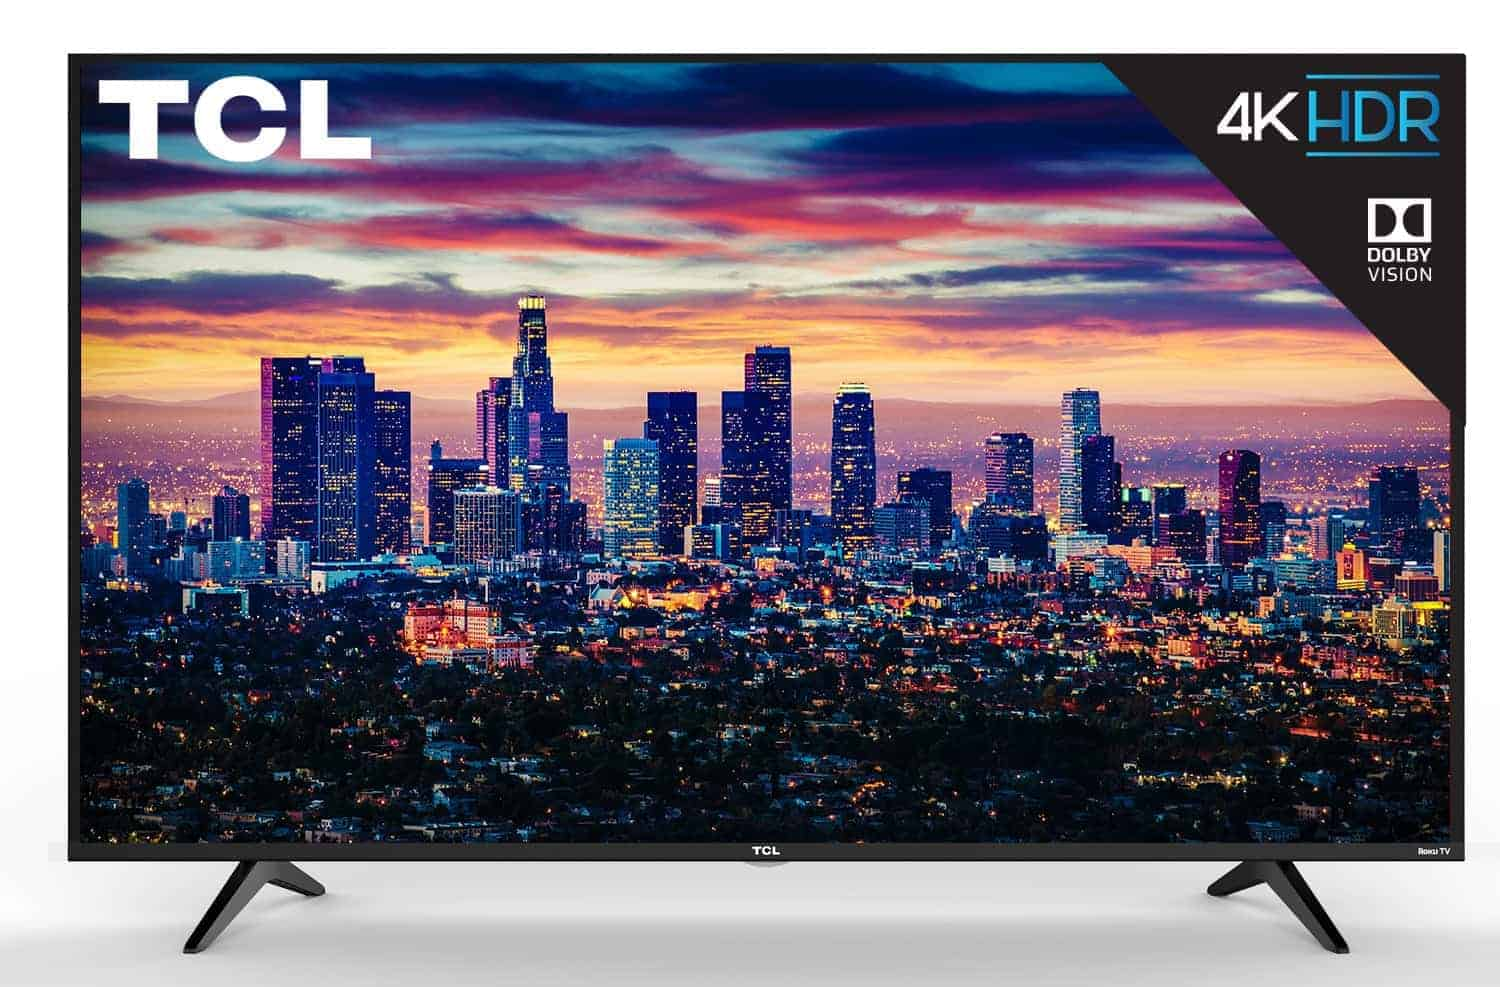 TCL 5 series TV front